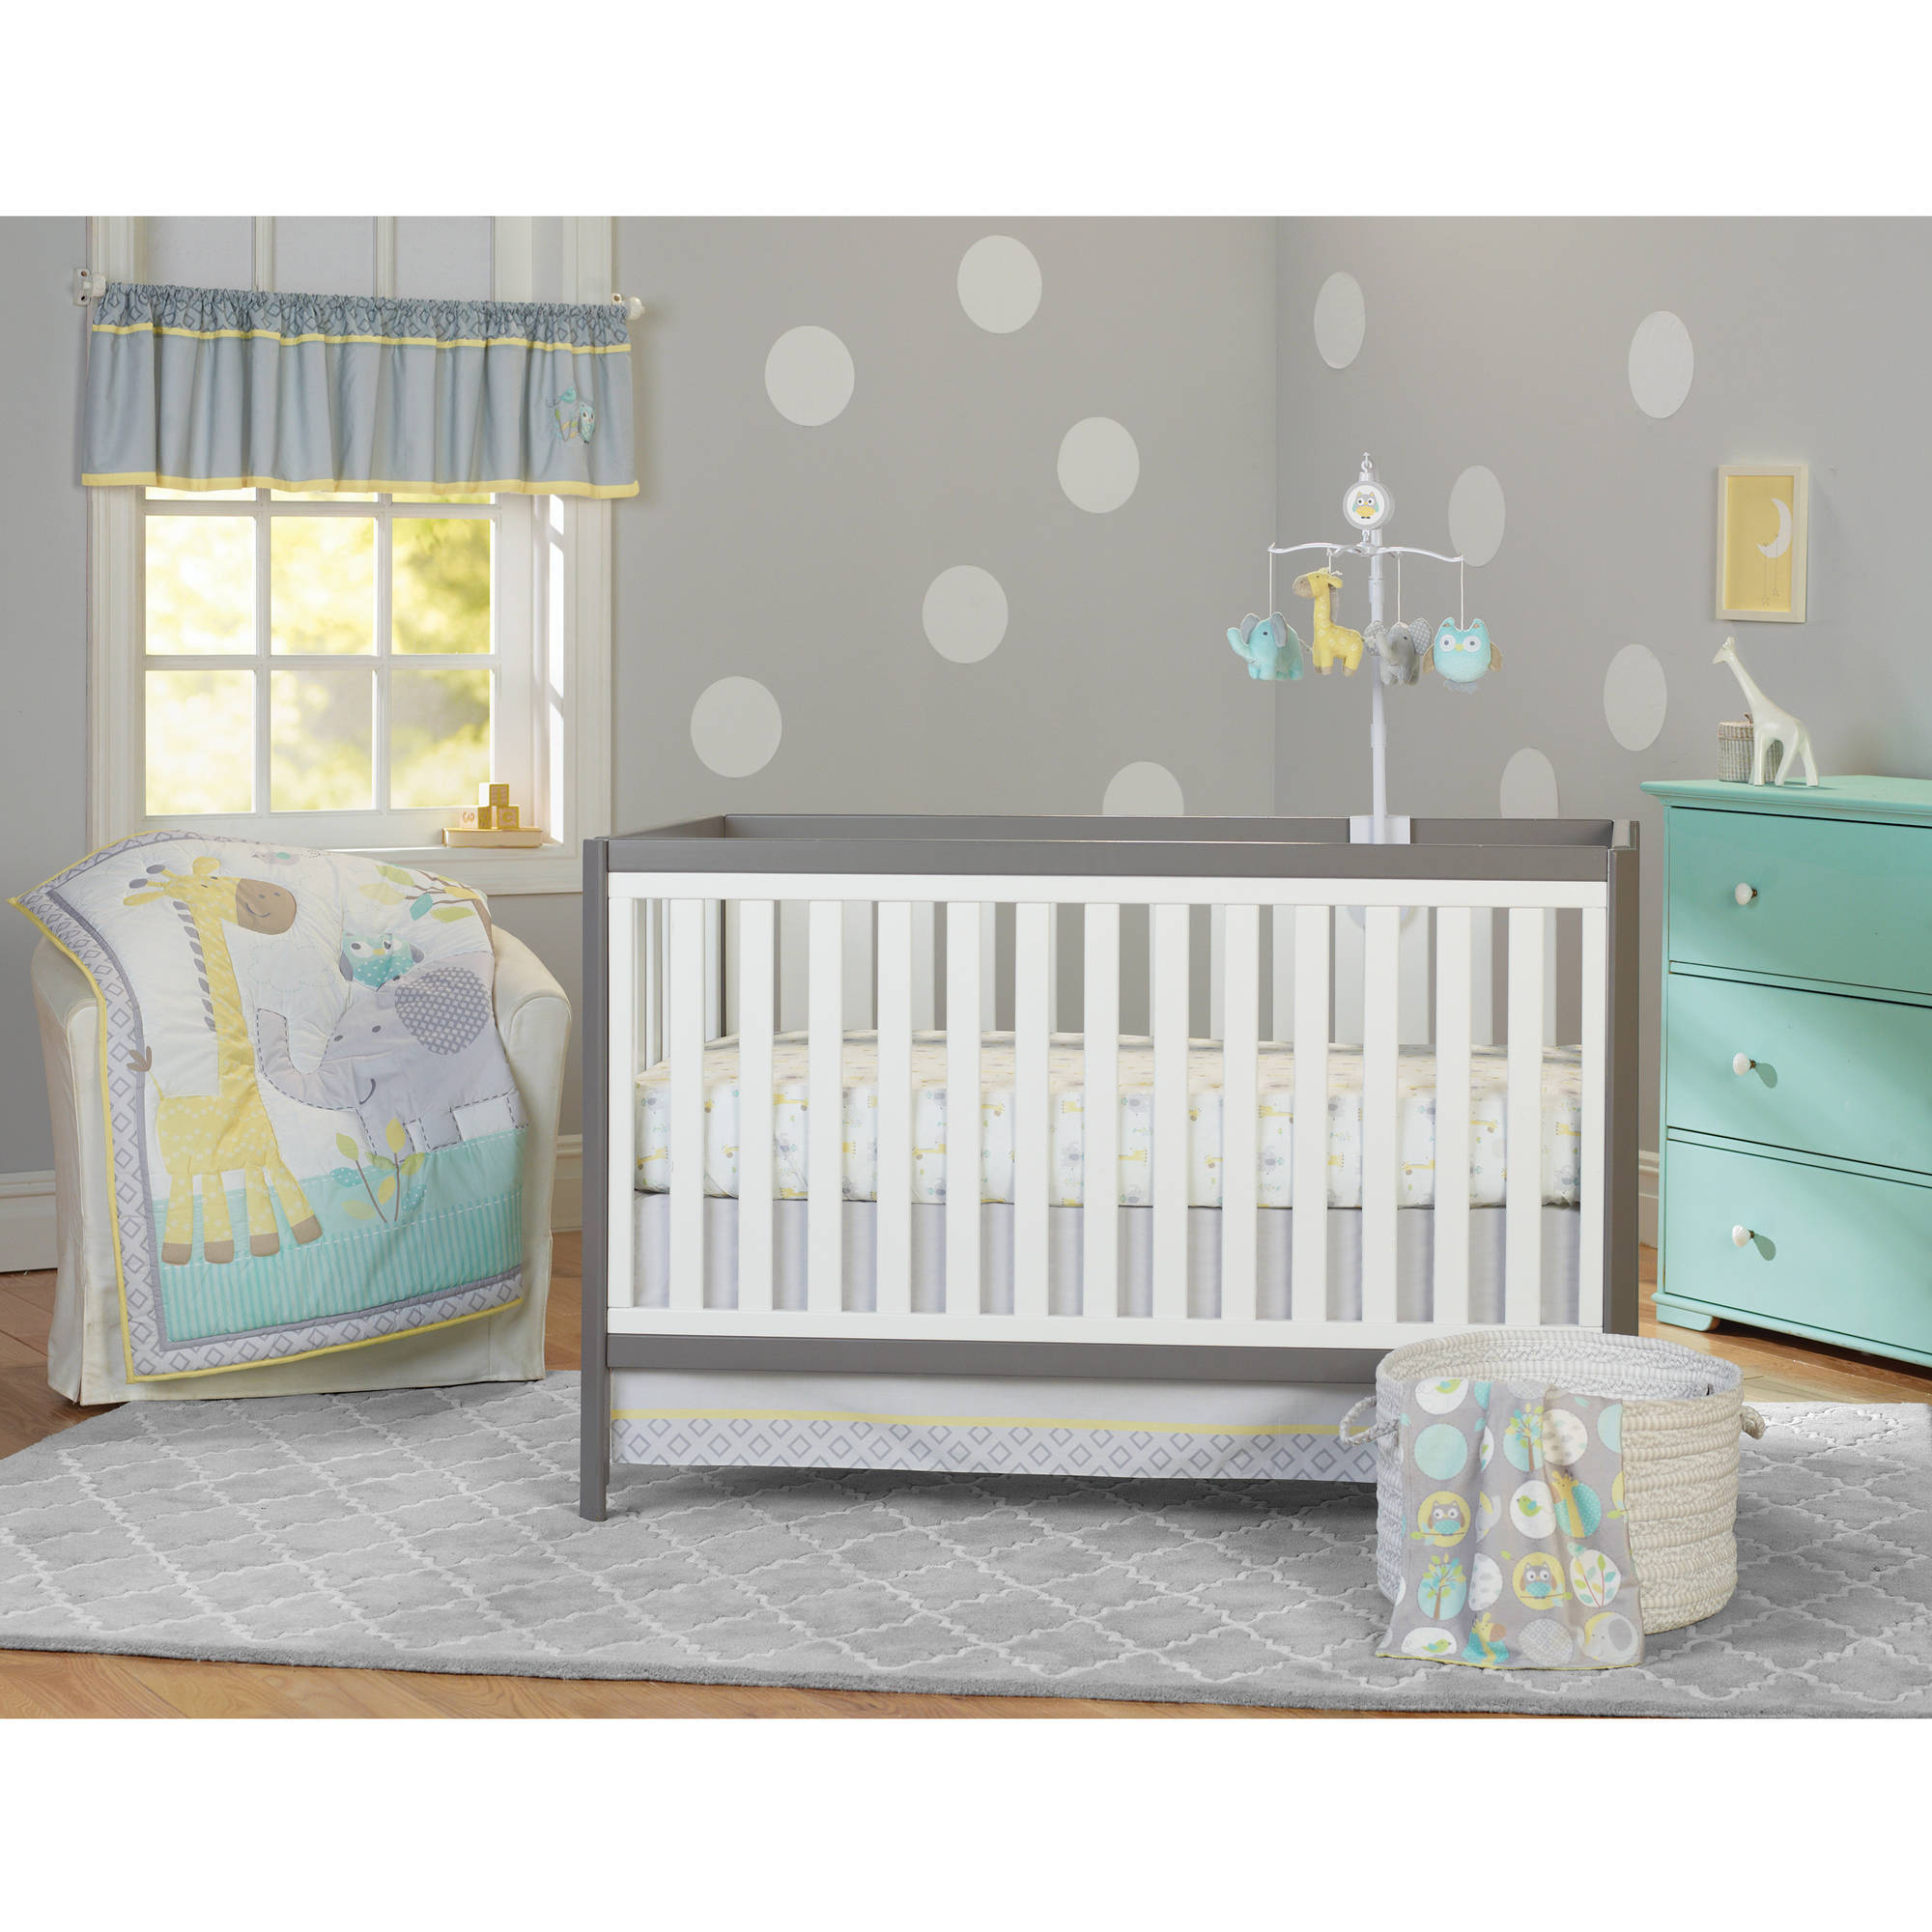 Garanimals Animal Crackers Crib Bedding Set, 3-Piece